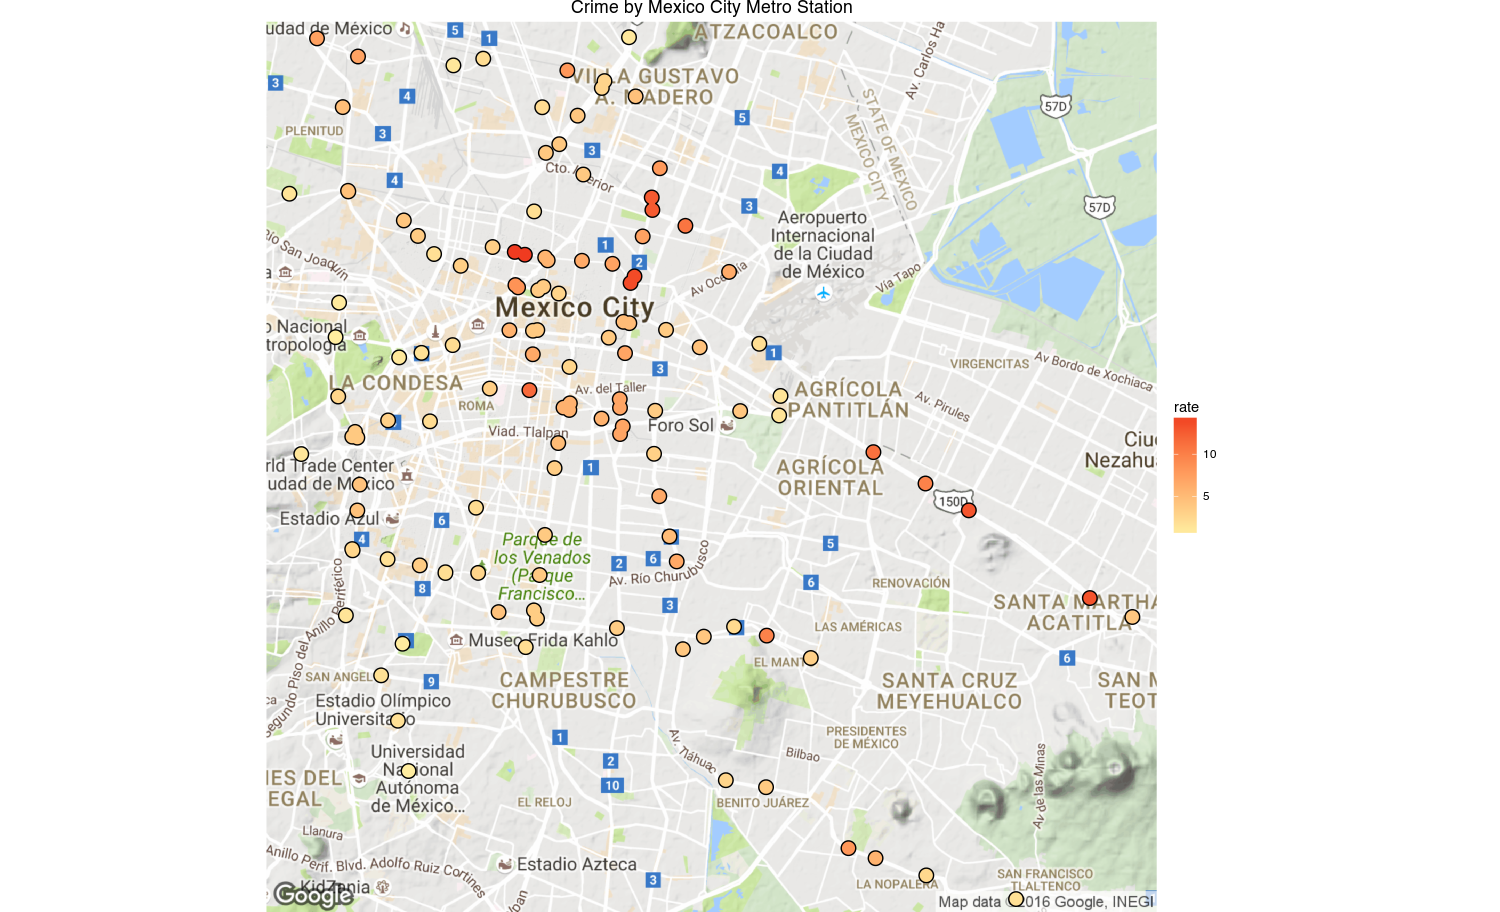 How to create crime maps of Mexico City